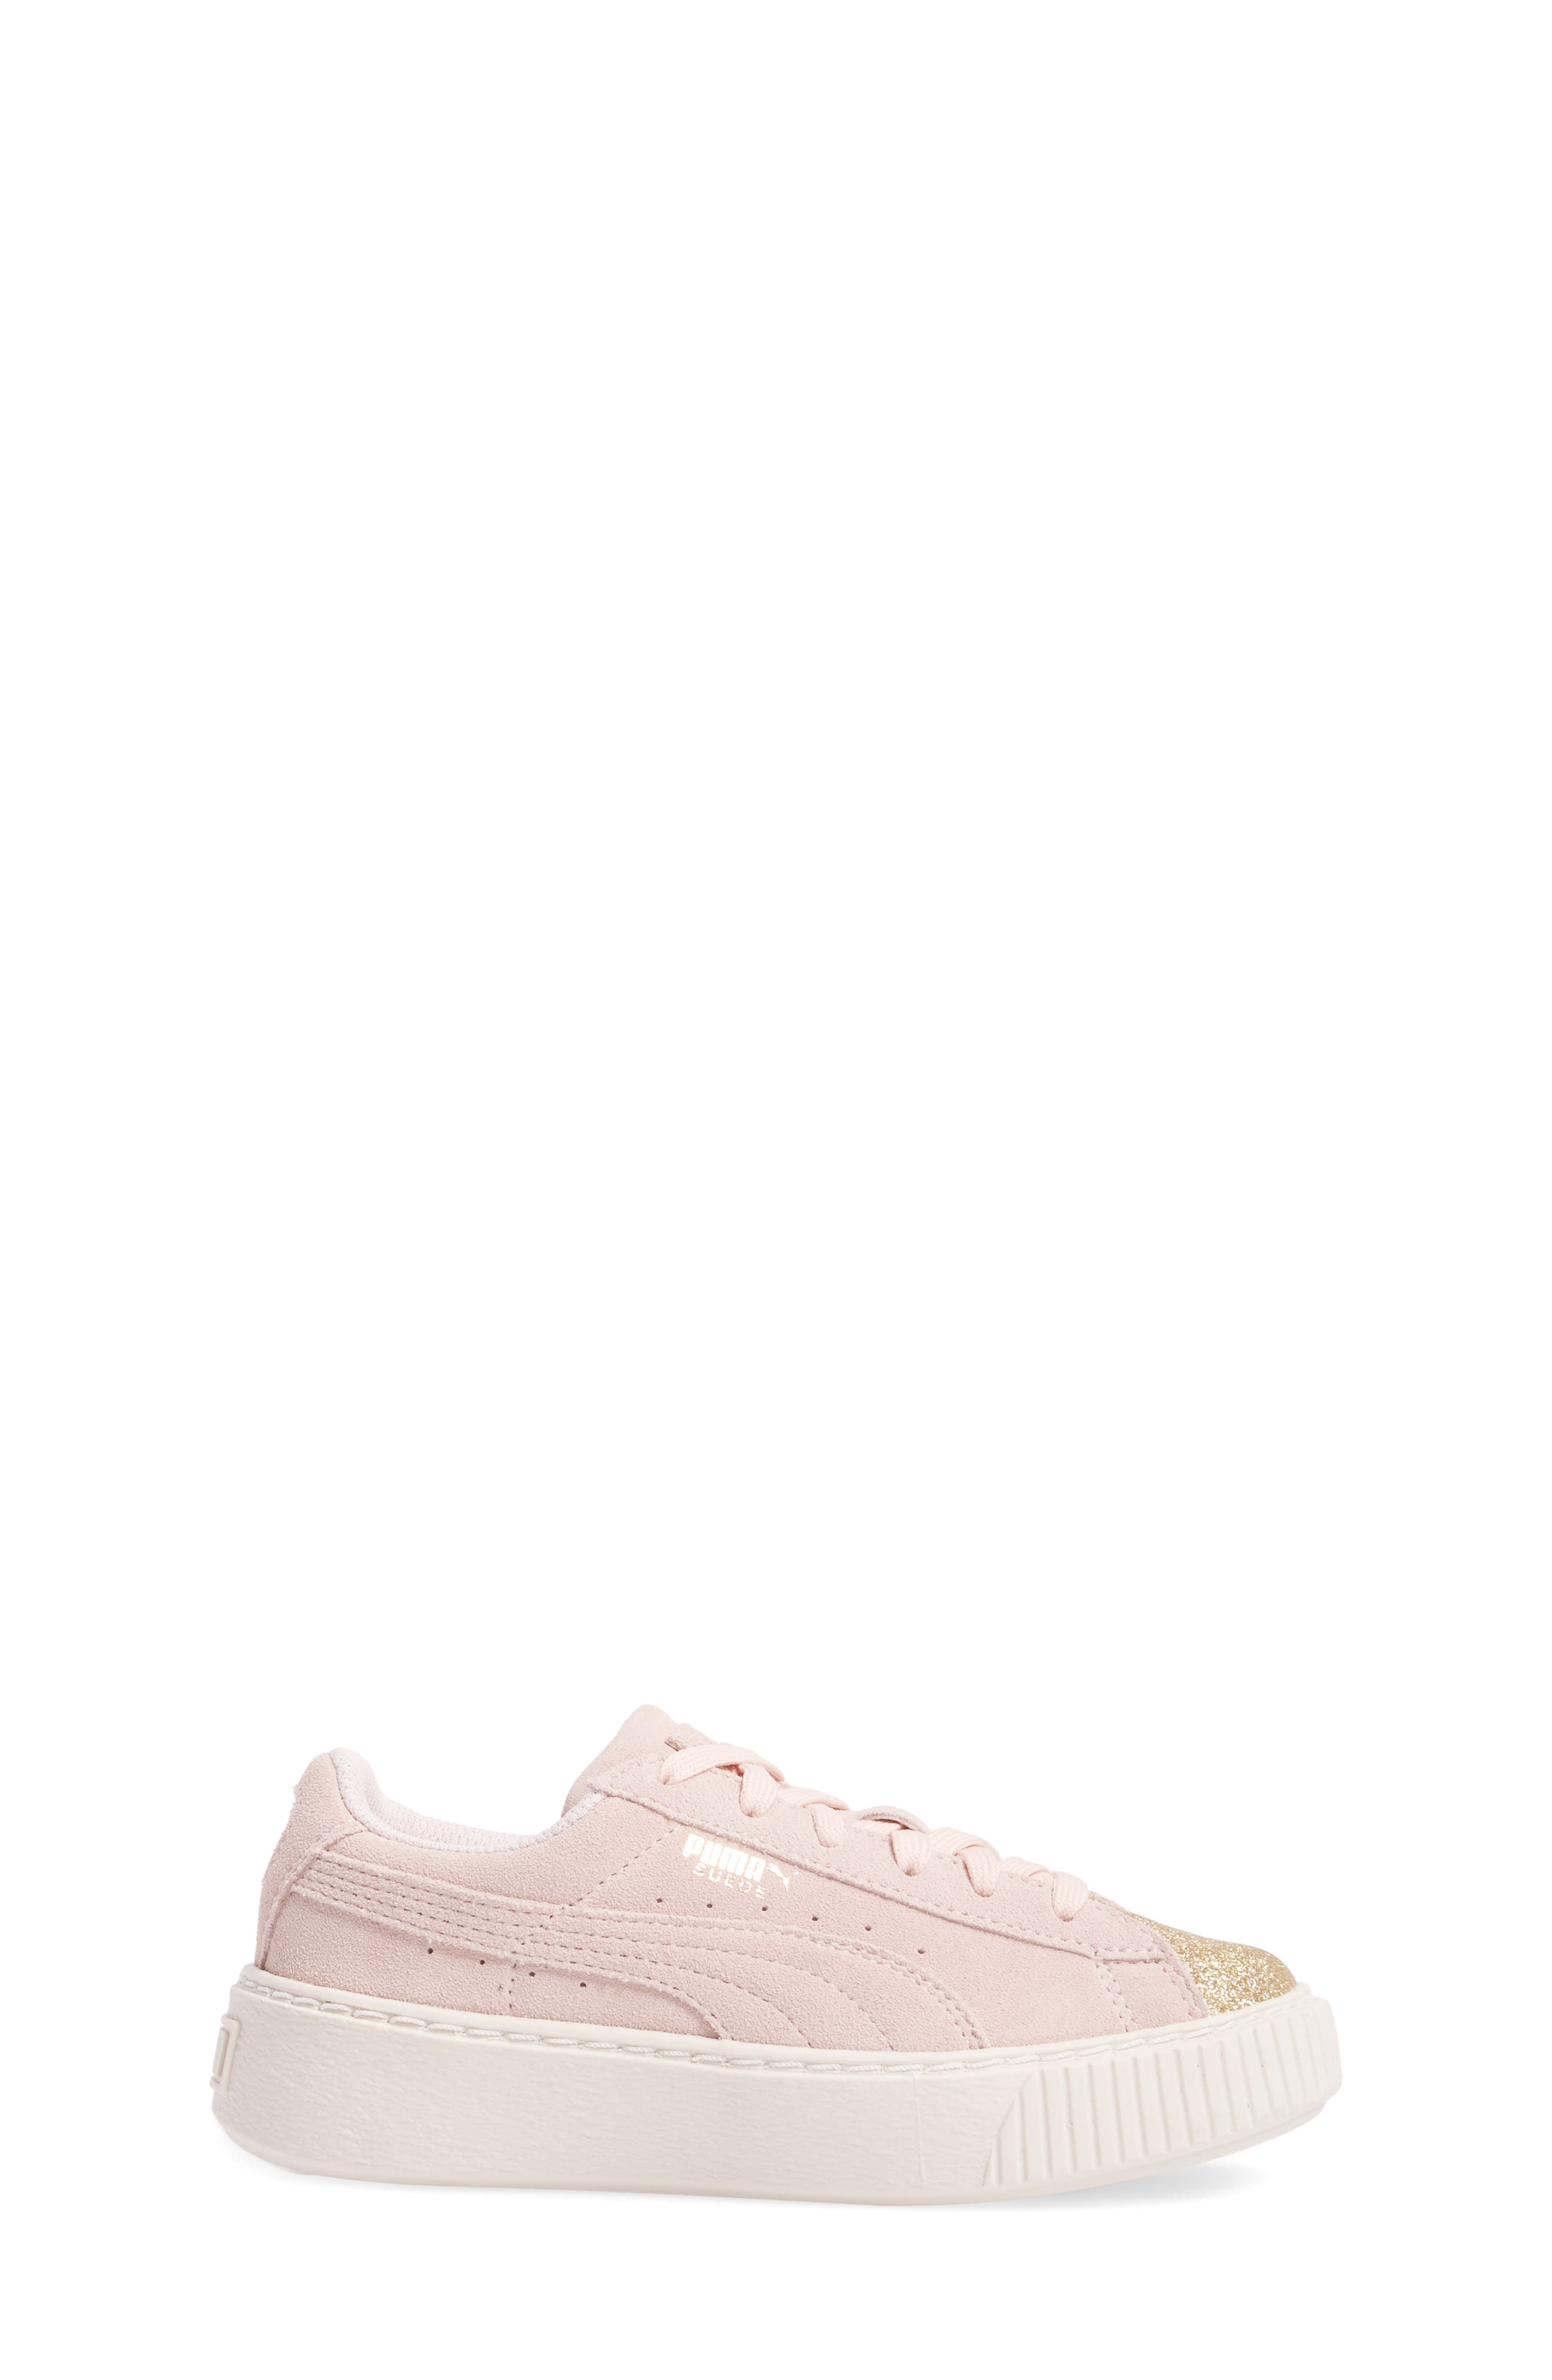 Alternate Image 3  - PUMA Suede Platform Glam Sneaker (Toddler, Little Kid & Big Kid)